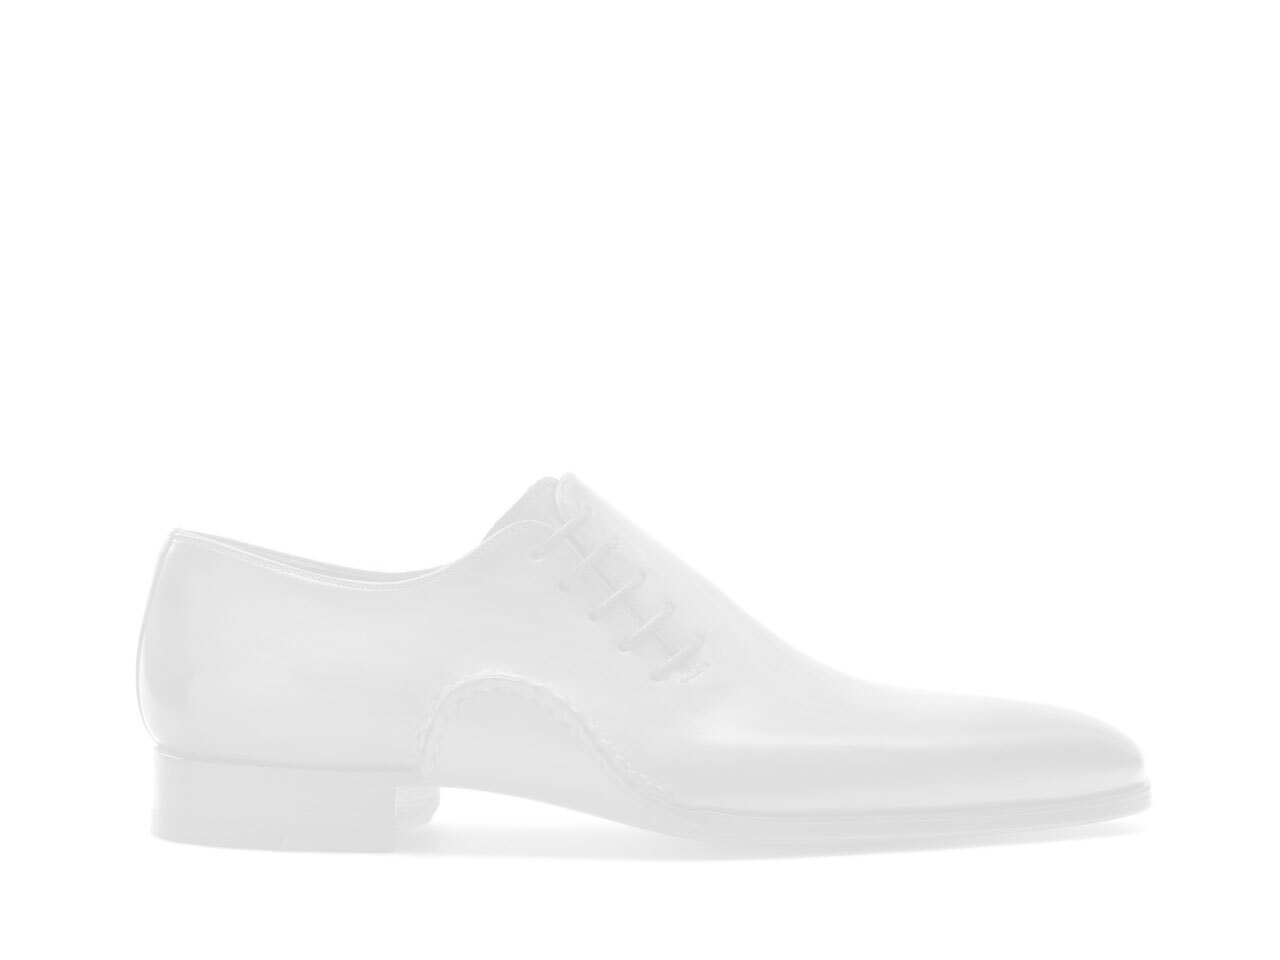 Pair of the Magnanni Siero White Men's Sneakers